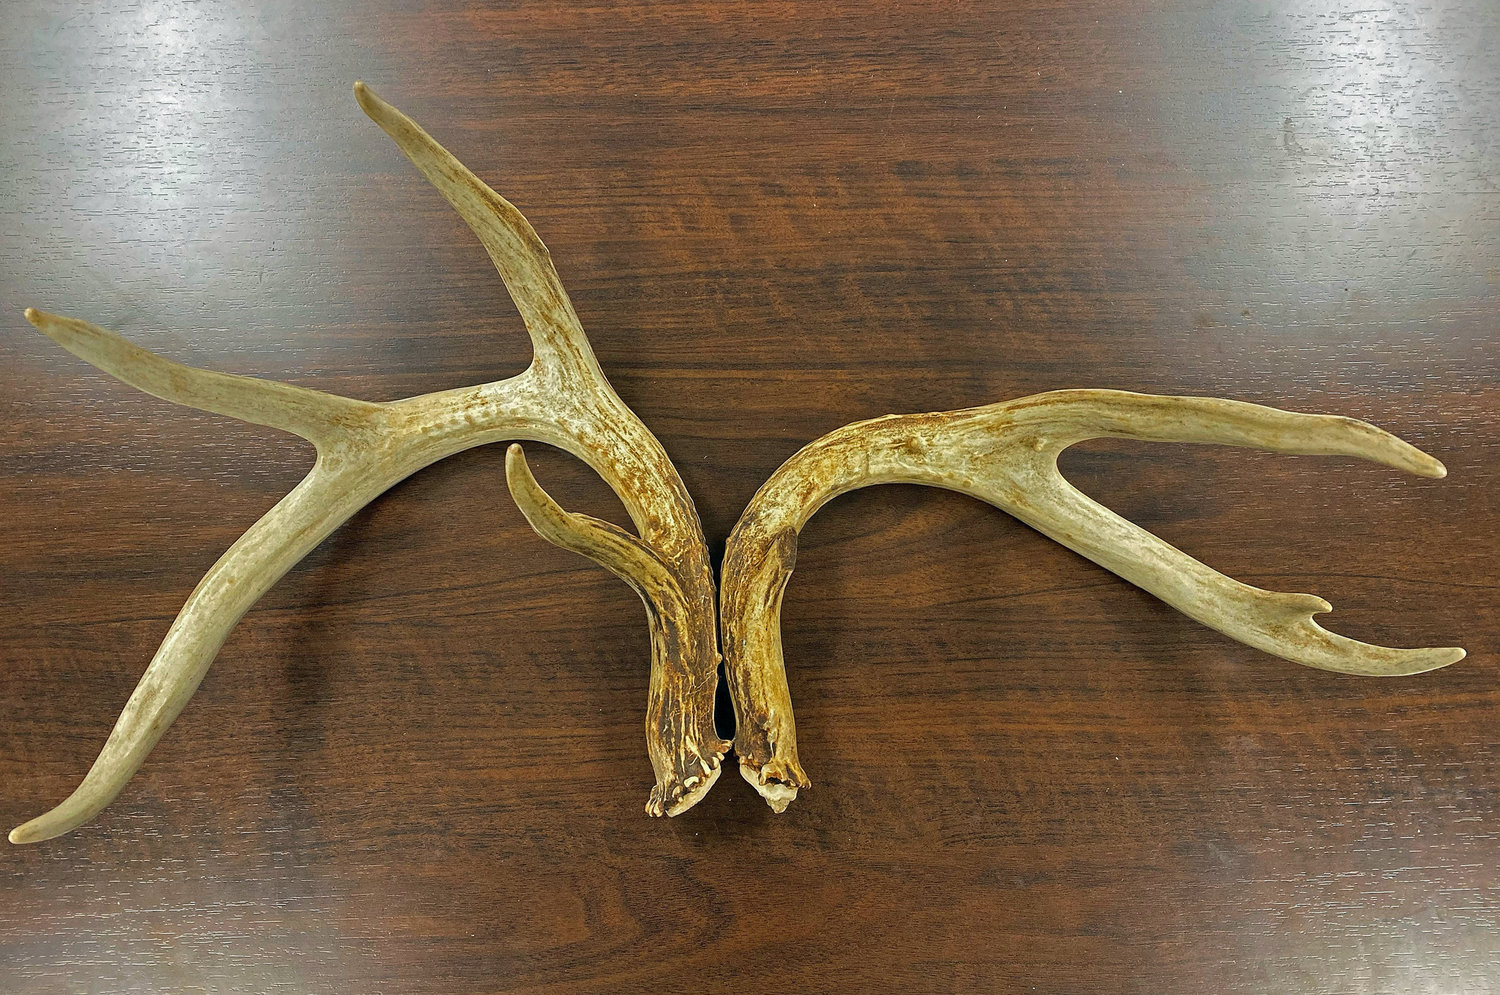 Damage to the pedicle, rather than genetics, caused this buck to have a malformed antler.